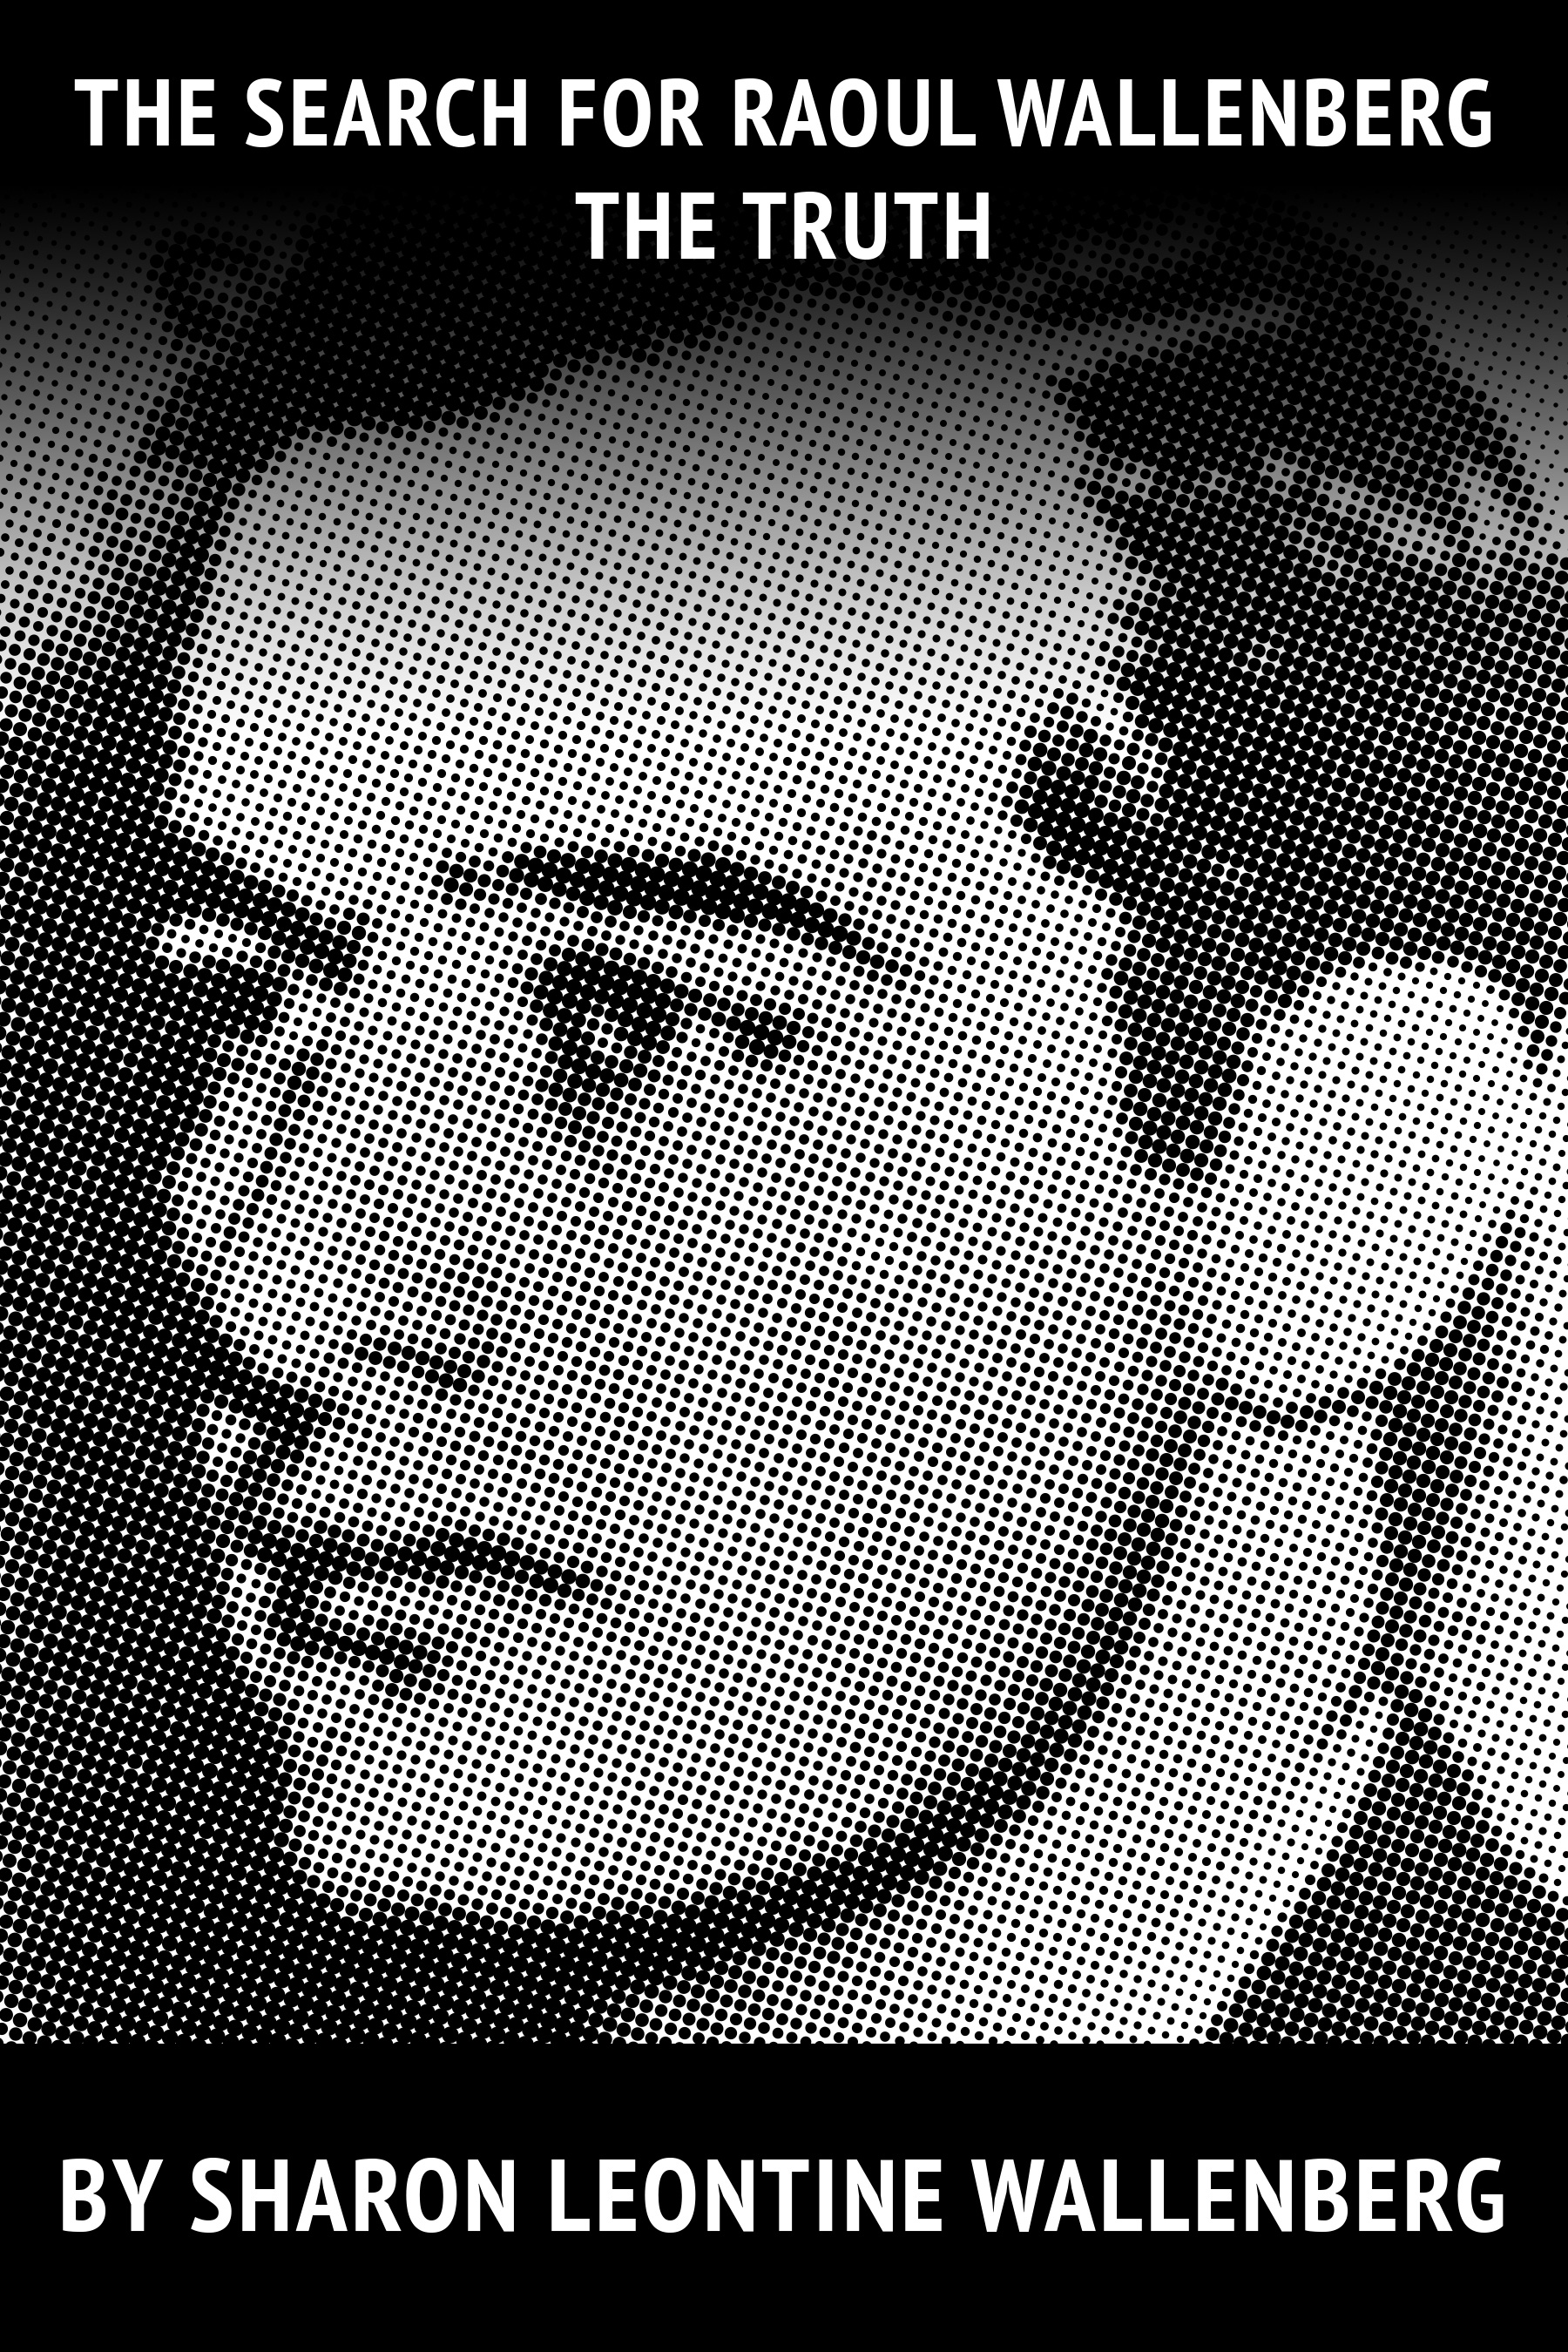 THE SEARCH FOR RAOUL WALLENBERG - THE TRUTH